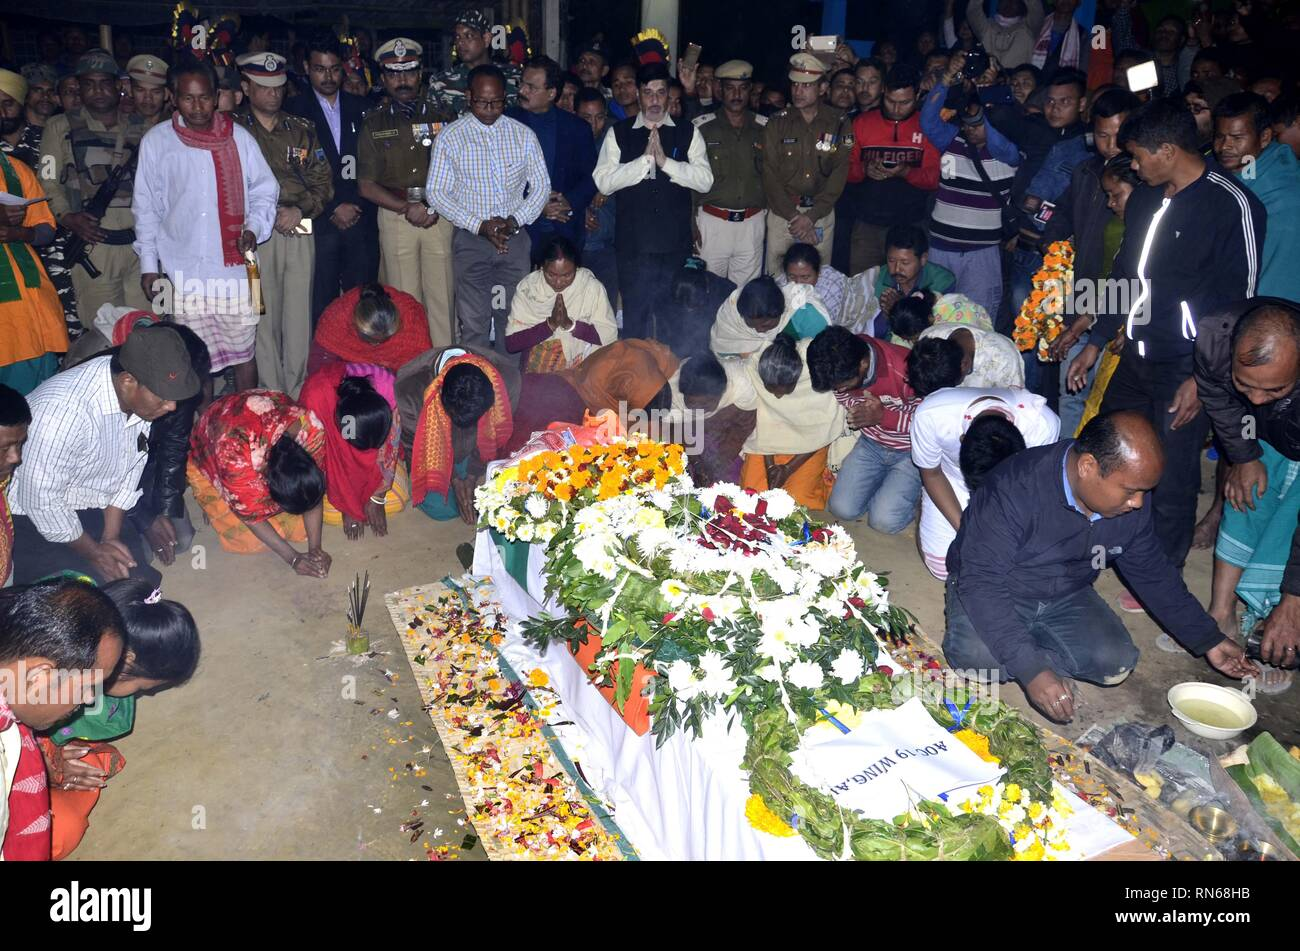 Assam, India. 16th Feb, 2019. Martyrs of Pulwama attack:Baksa,Assam,India:16 February 2019:: Family members pay their final respects to the slain CRPF Maneshwar Basumatary, who lost his life in Thursday's Pulwama terror attack, in Baksa, Saturday, Feb 16, 2019. Credit: Hafiz Ahmed/Alamy Live News - Stock Image